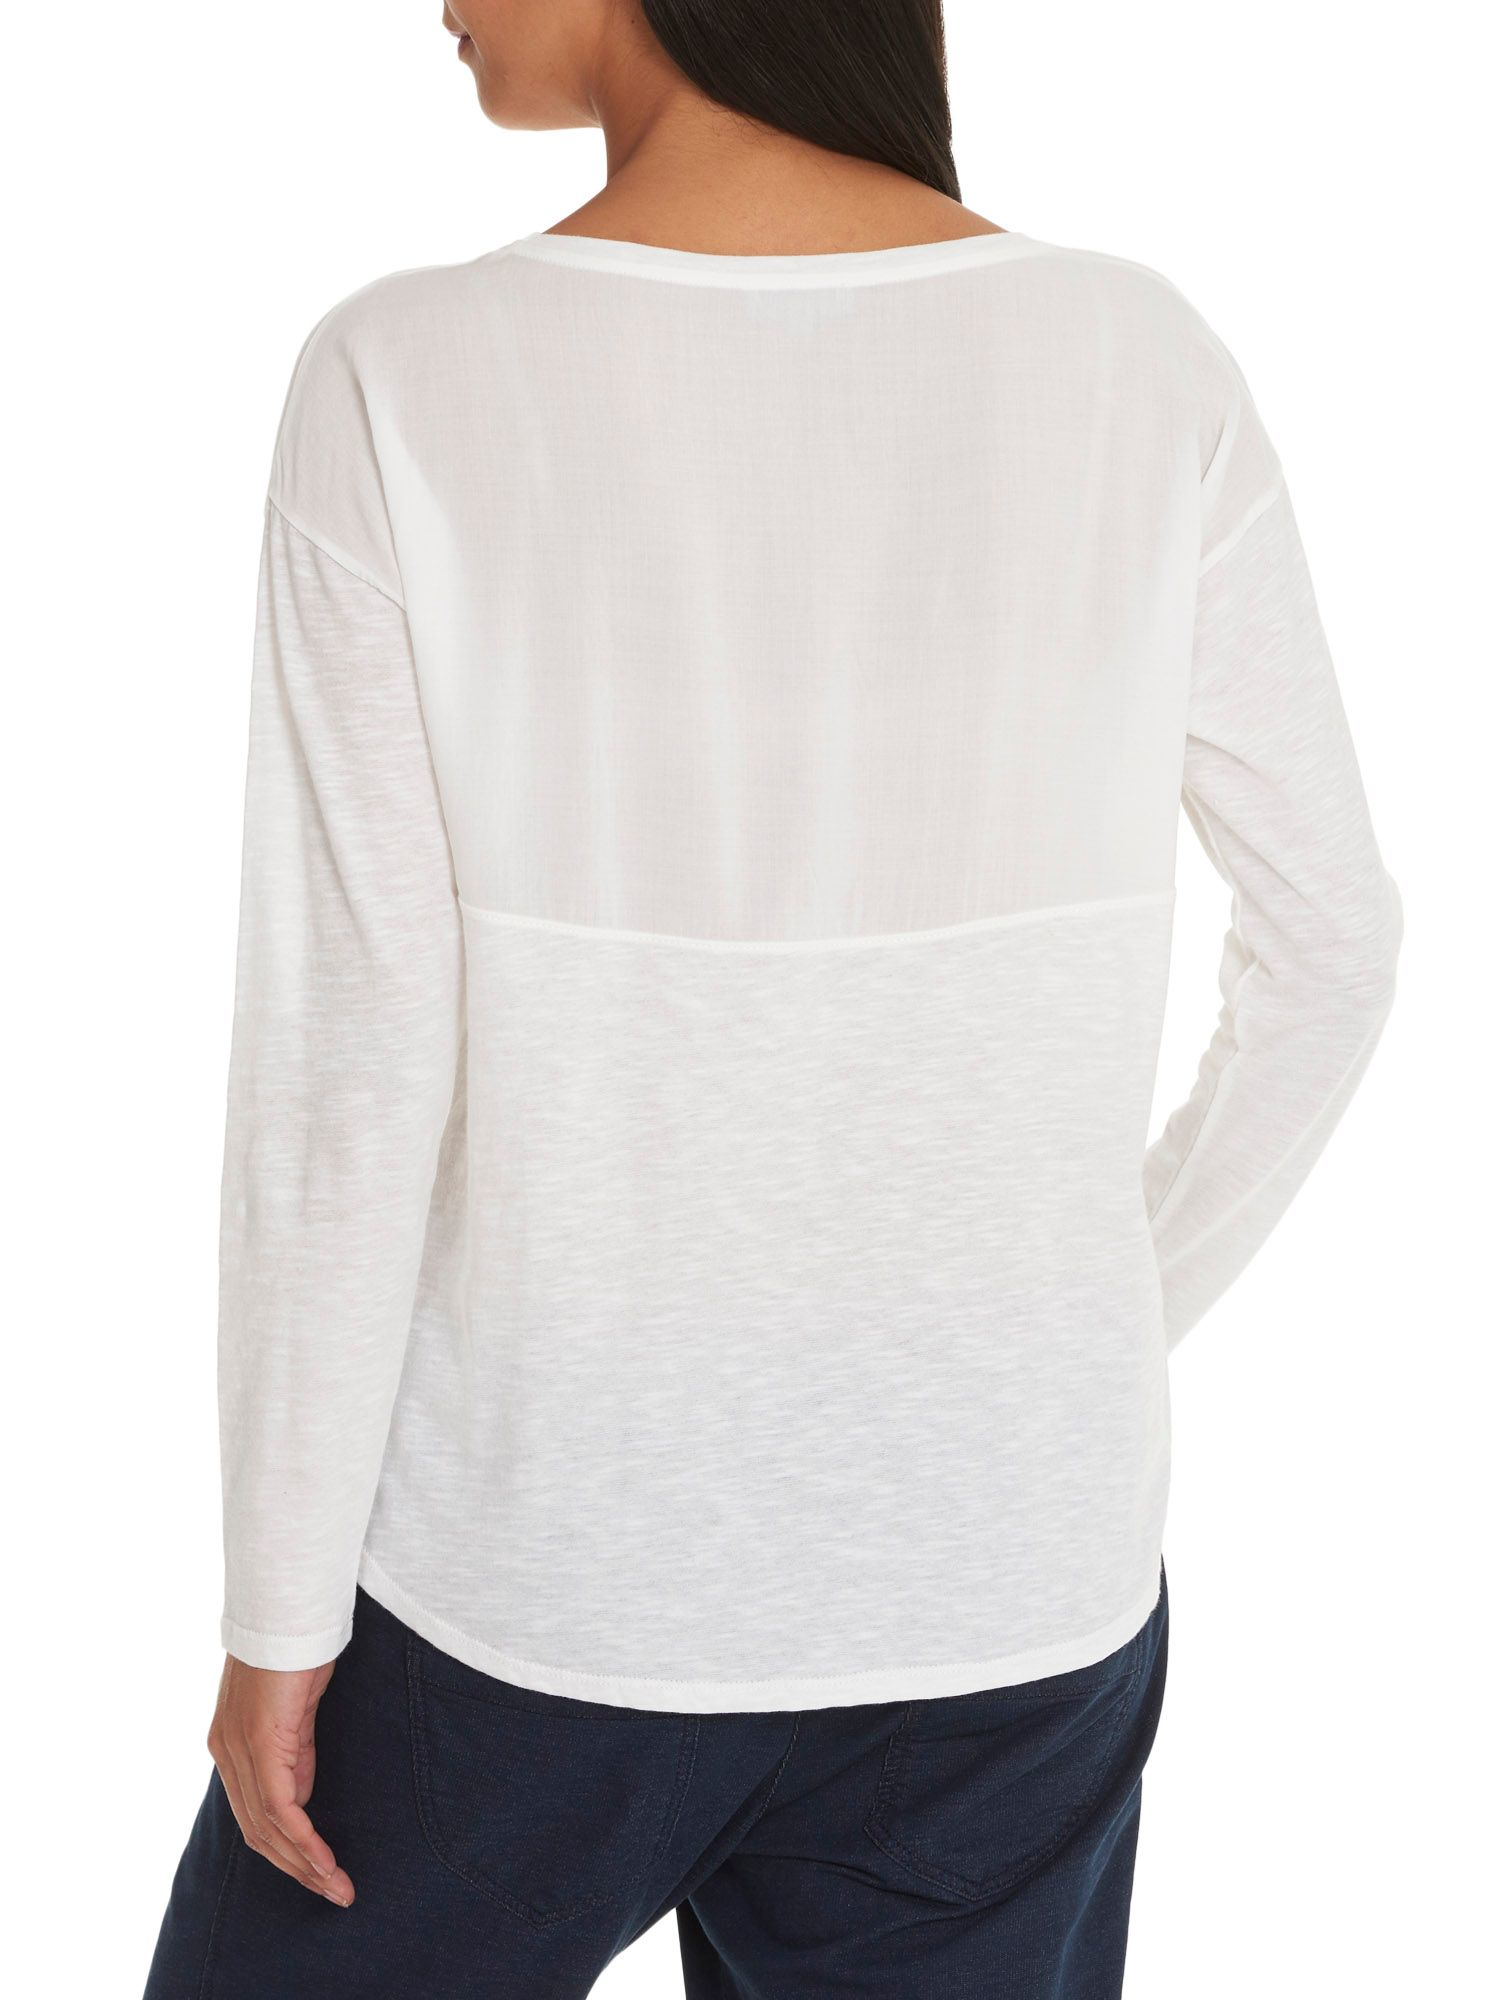 Betty co long sleeved cotton t shirt in white lyst for White cotton long sleeve t shirt